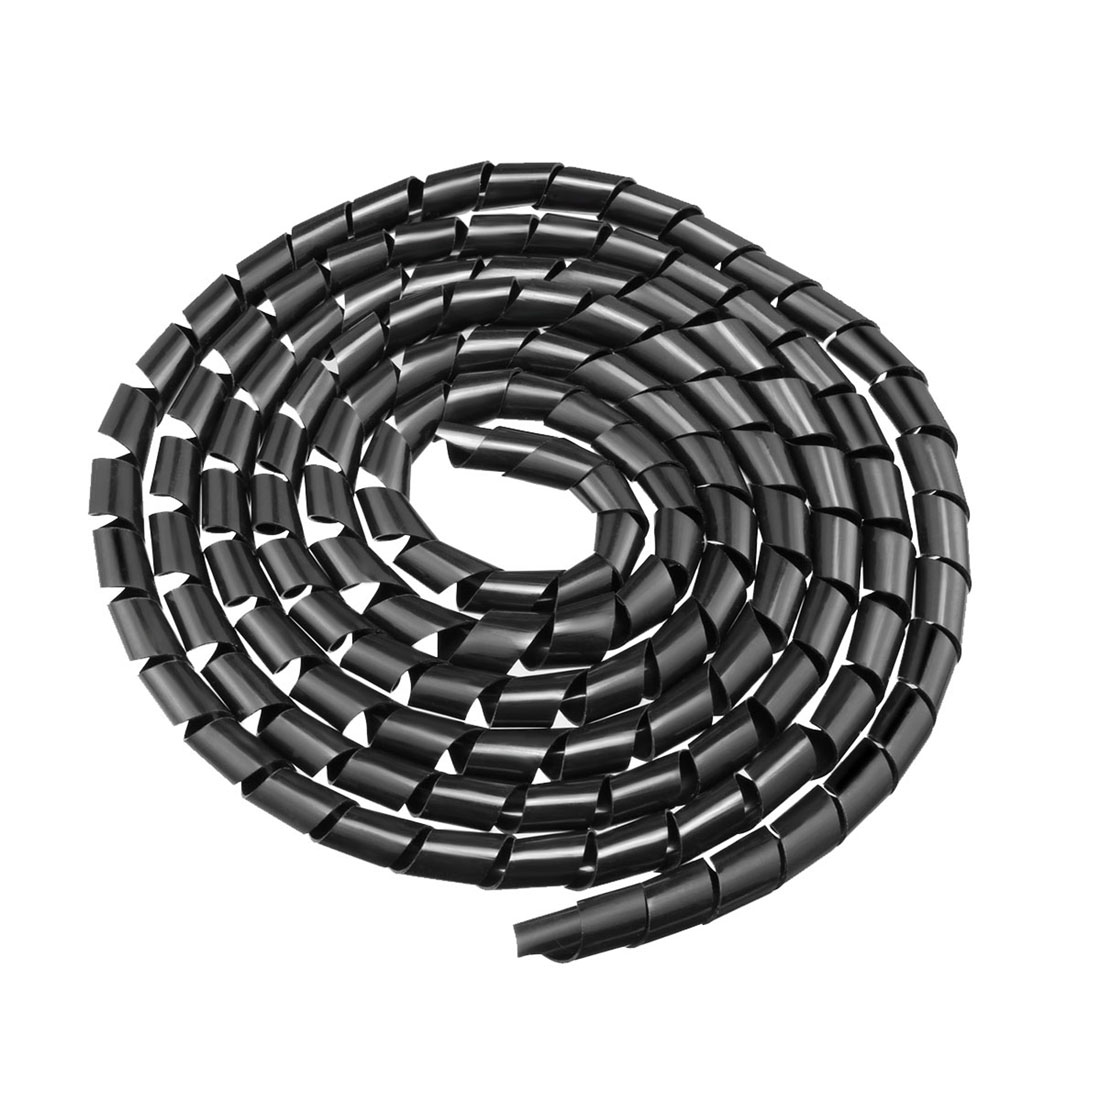 11mm Flexible Spiral Tube Cable Wire Wrap Computer Manage Cord 6.5M Length Black